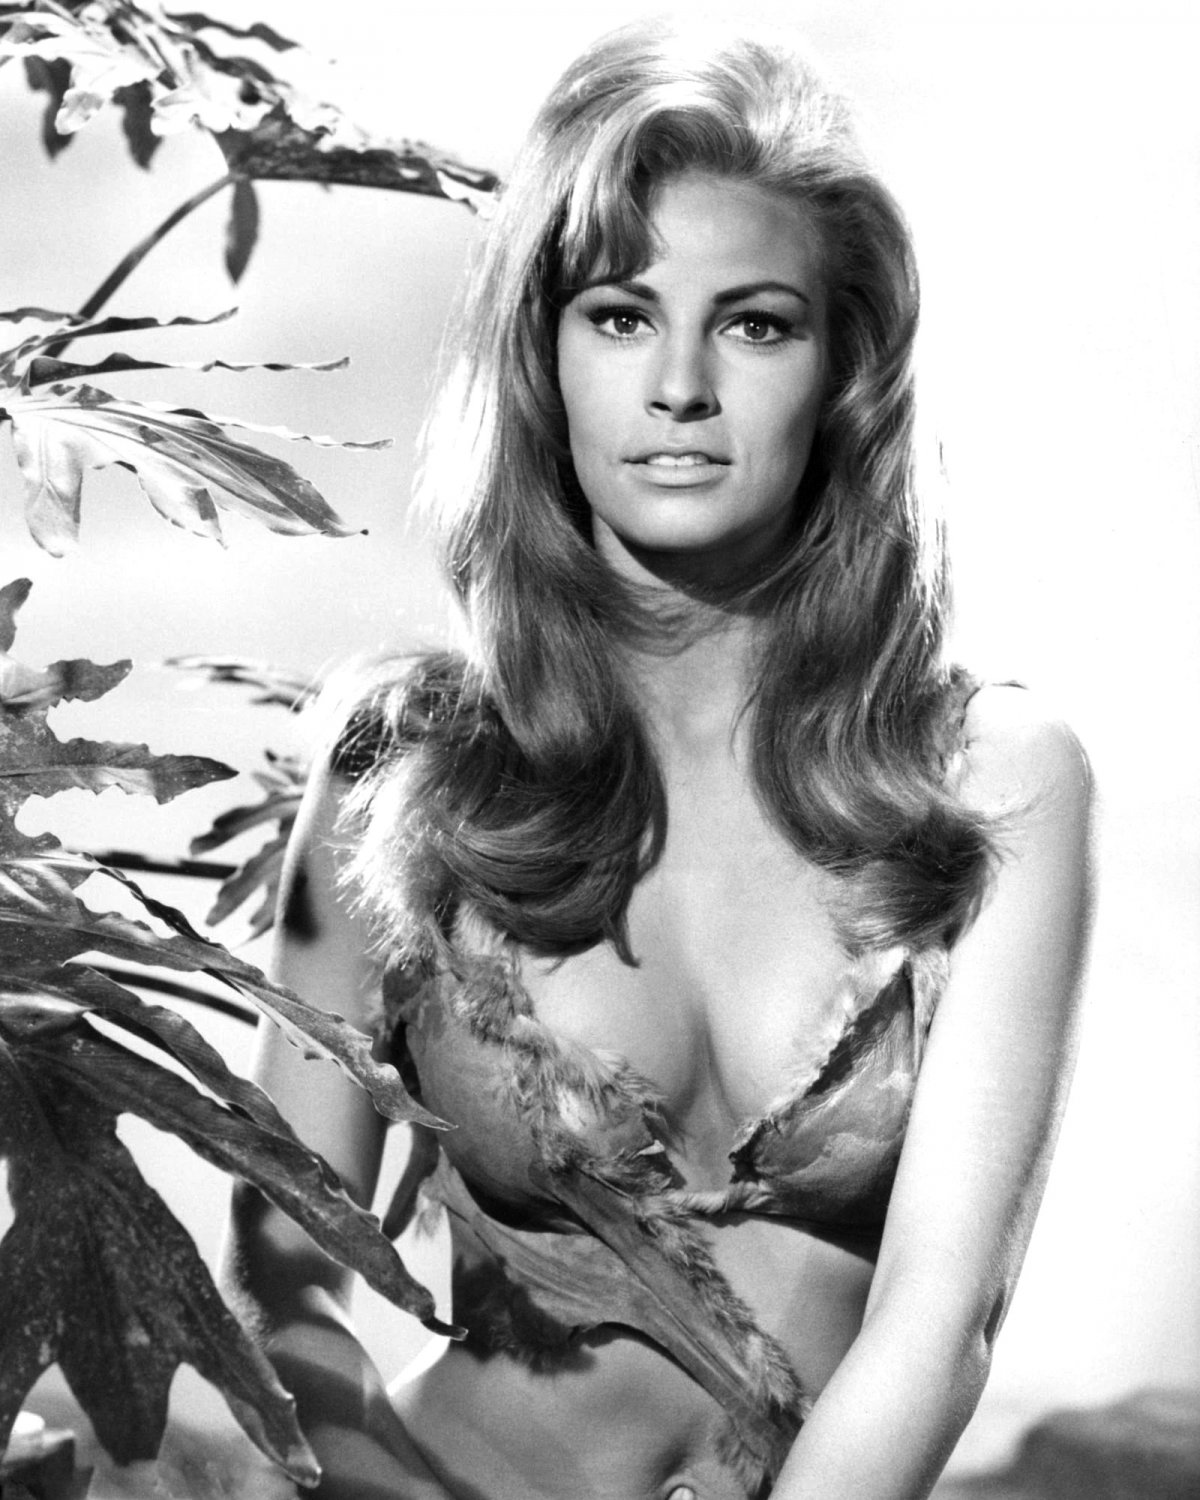 """RAQUEL WELCH IN THE FILM """"ONE MILLION YEARS B.C."""" 8X10 PUBLICITY PHOTO (CC-196)"""